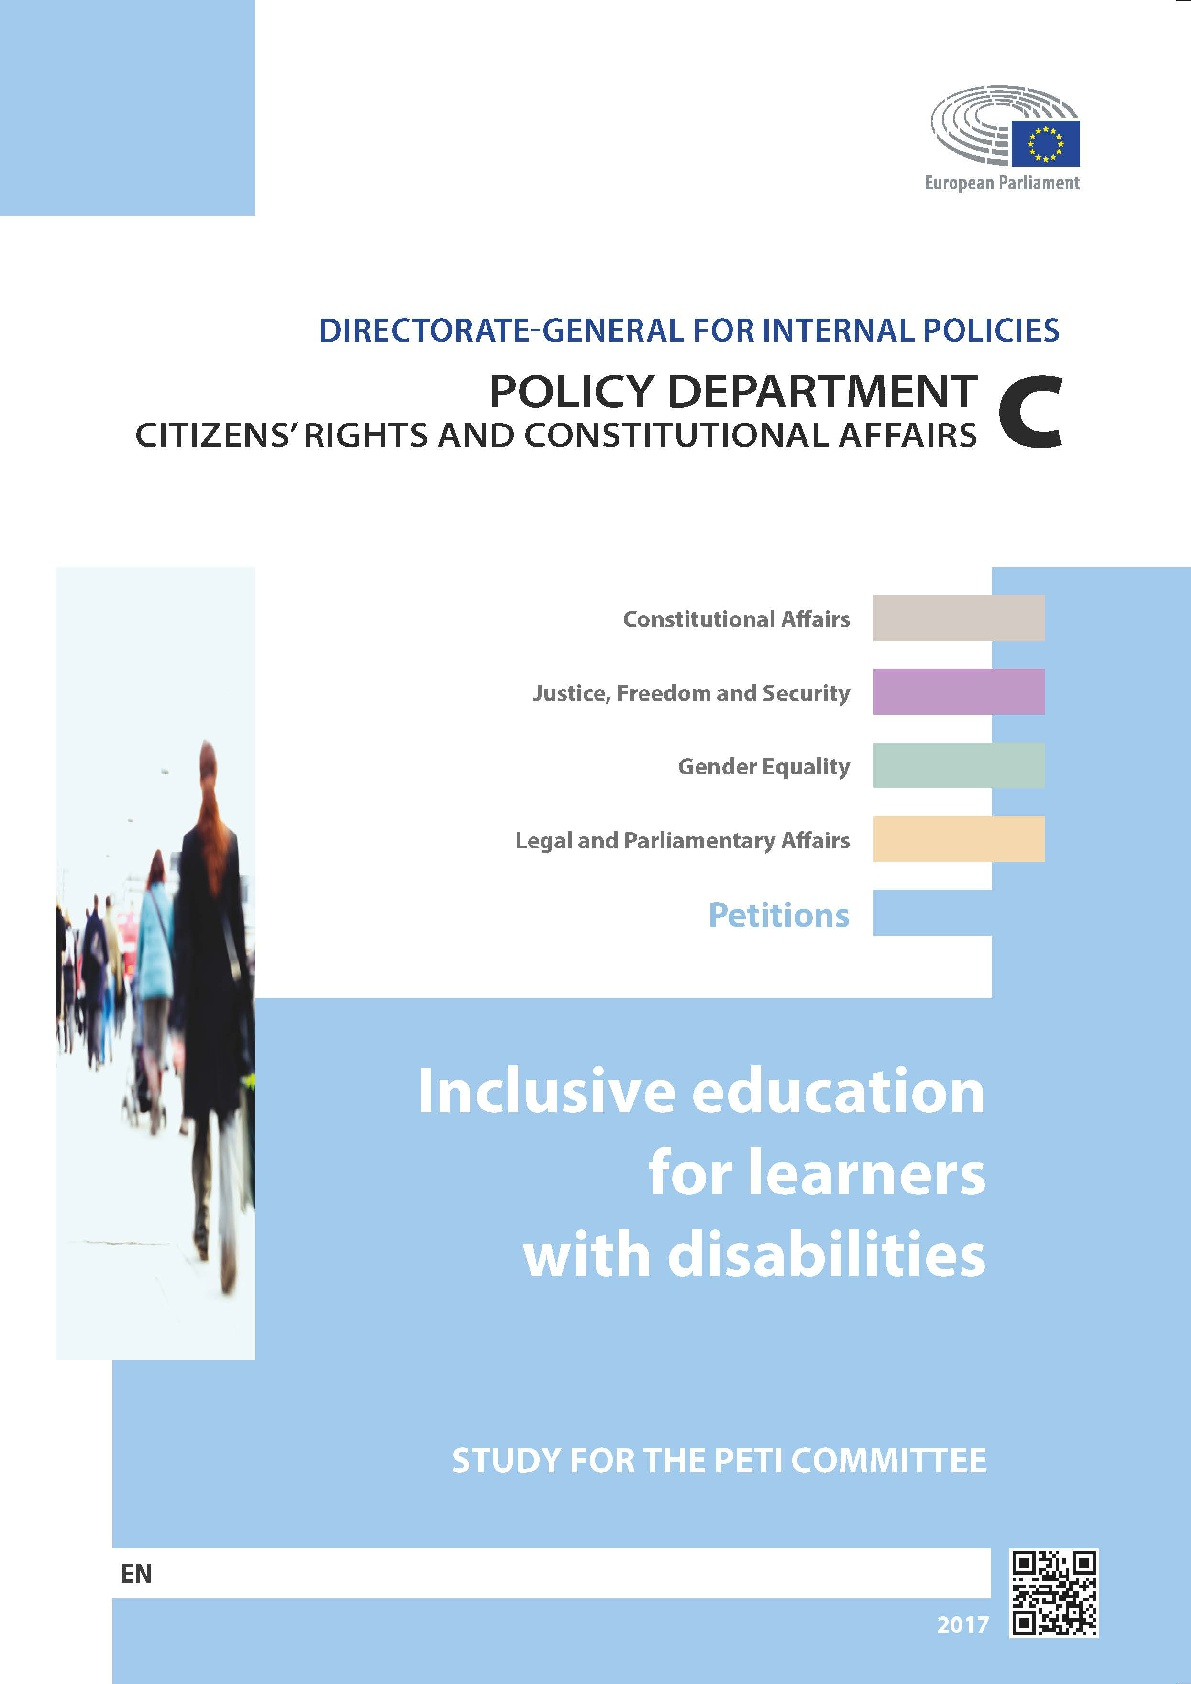 Inclusive education for learners with disabilities